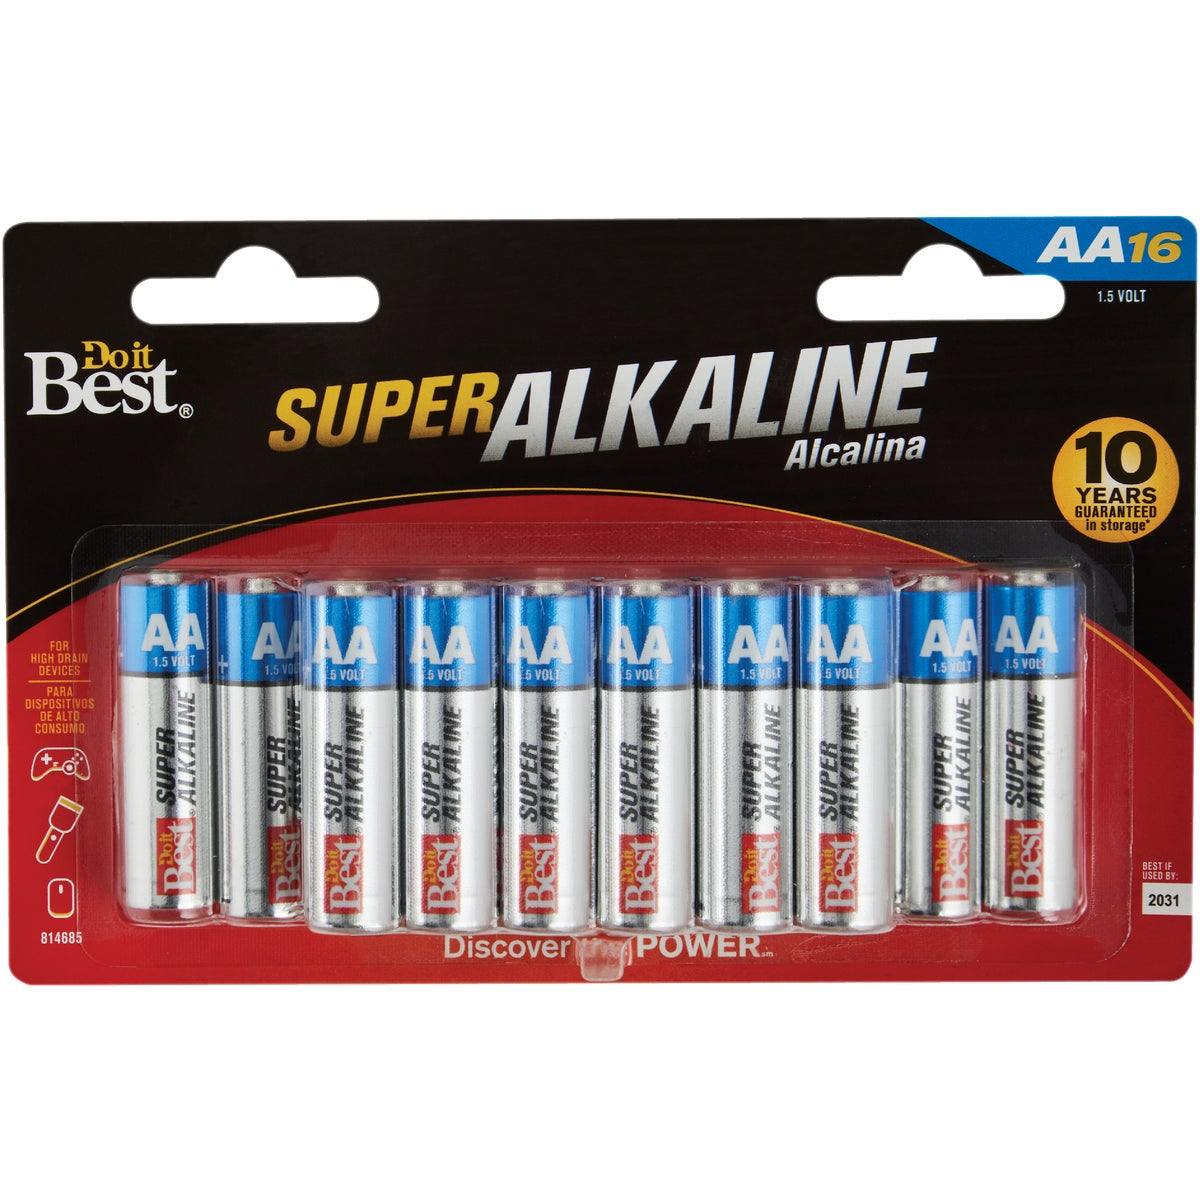 16PK DIB AA ALK BATTERY - DIB815-16 by Ray O Vac